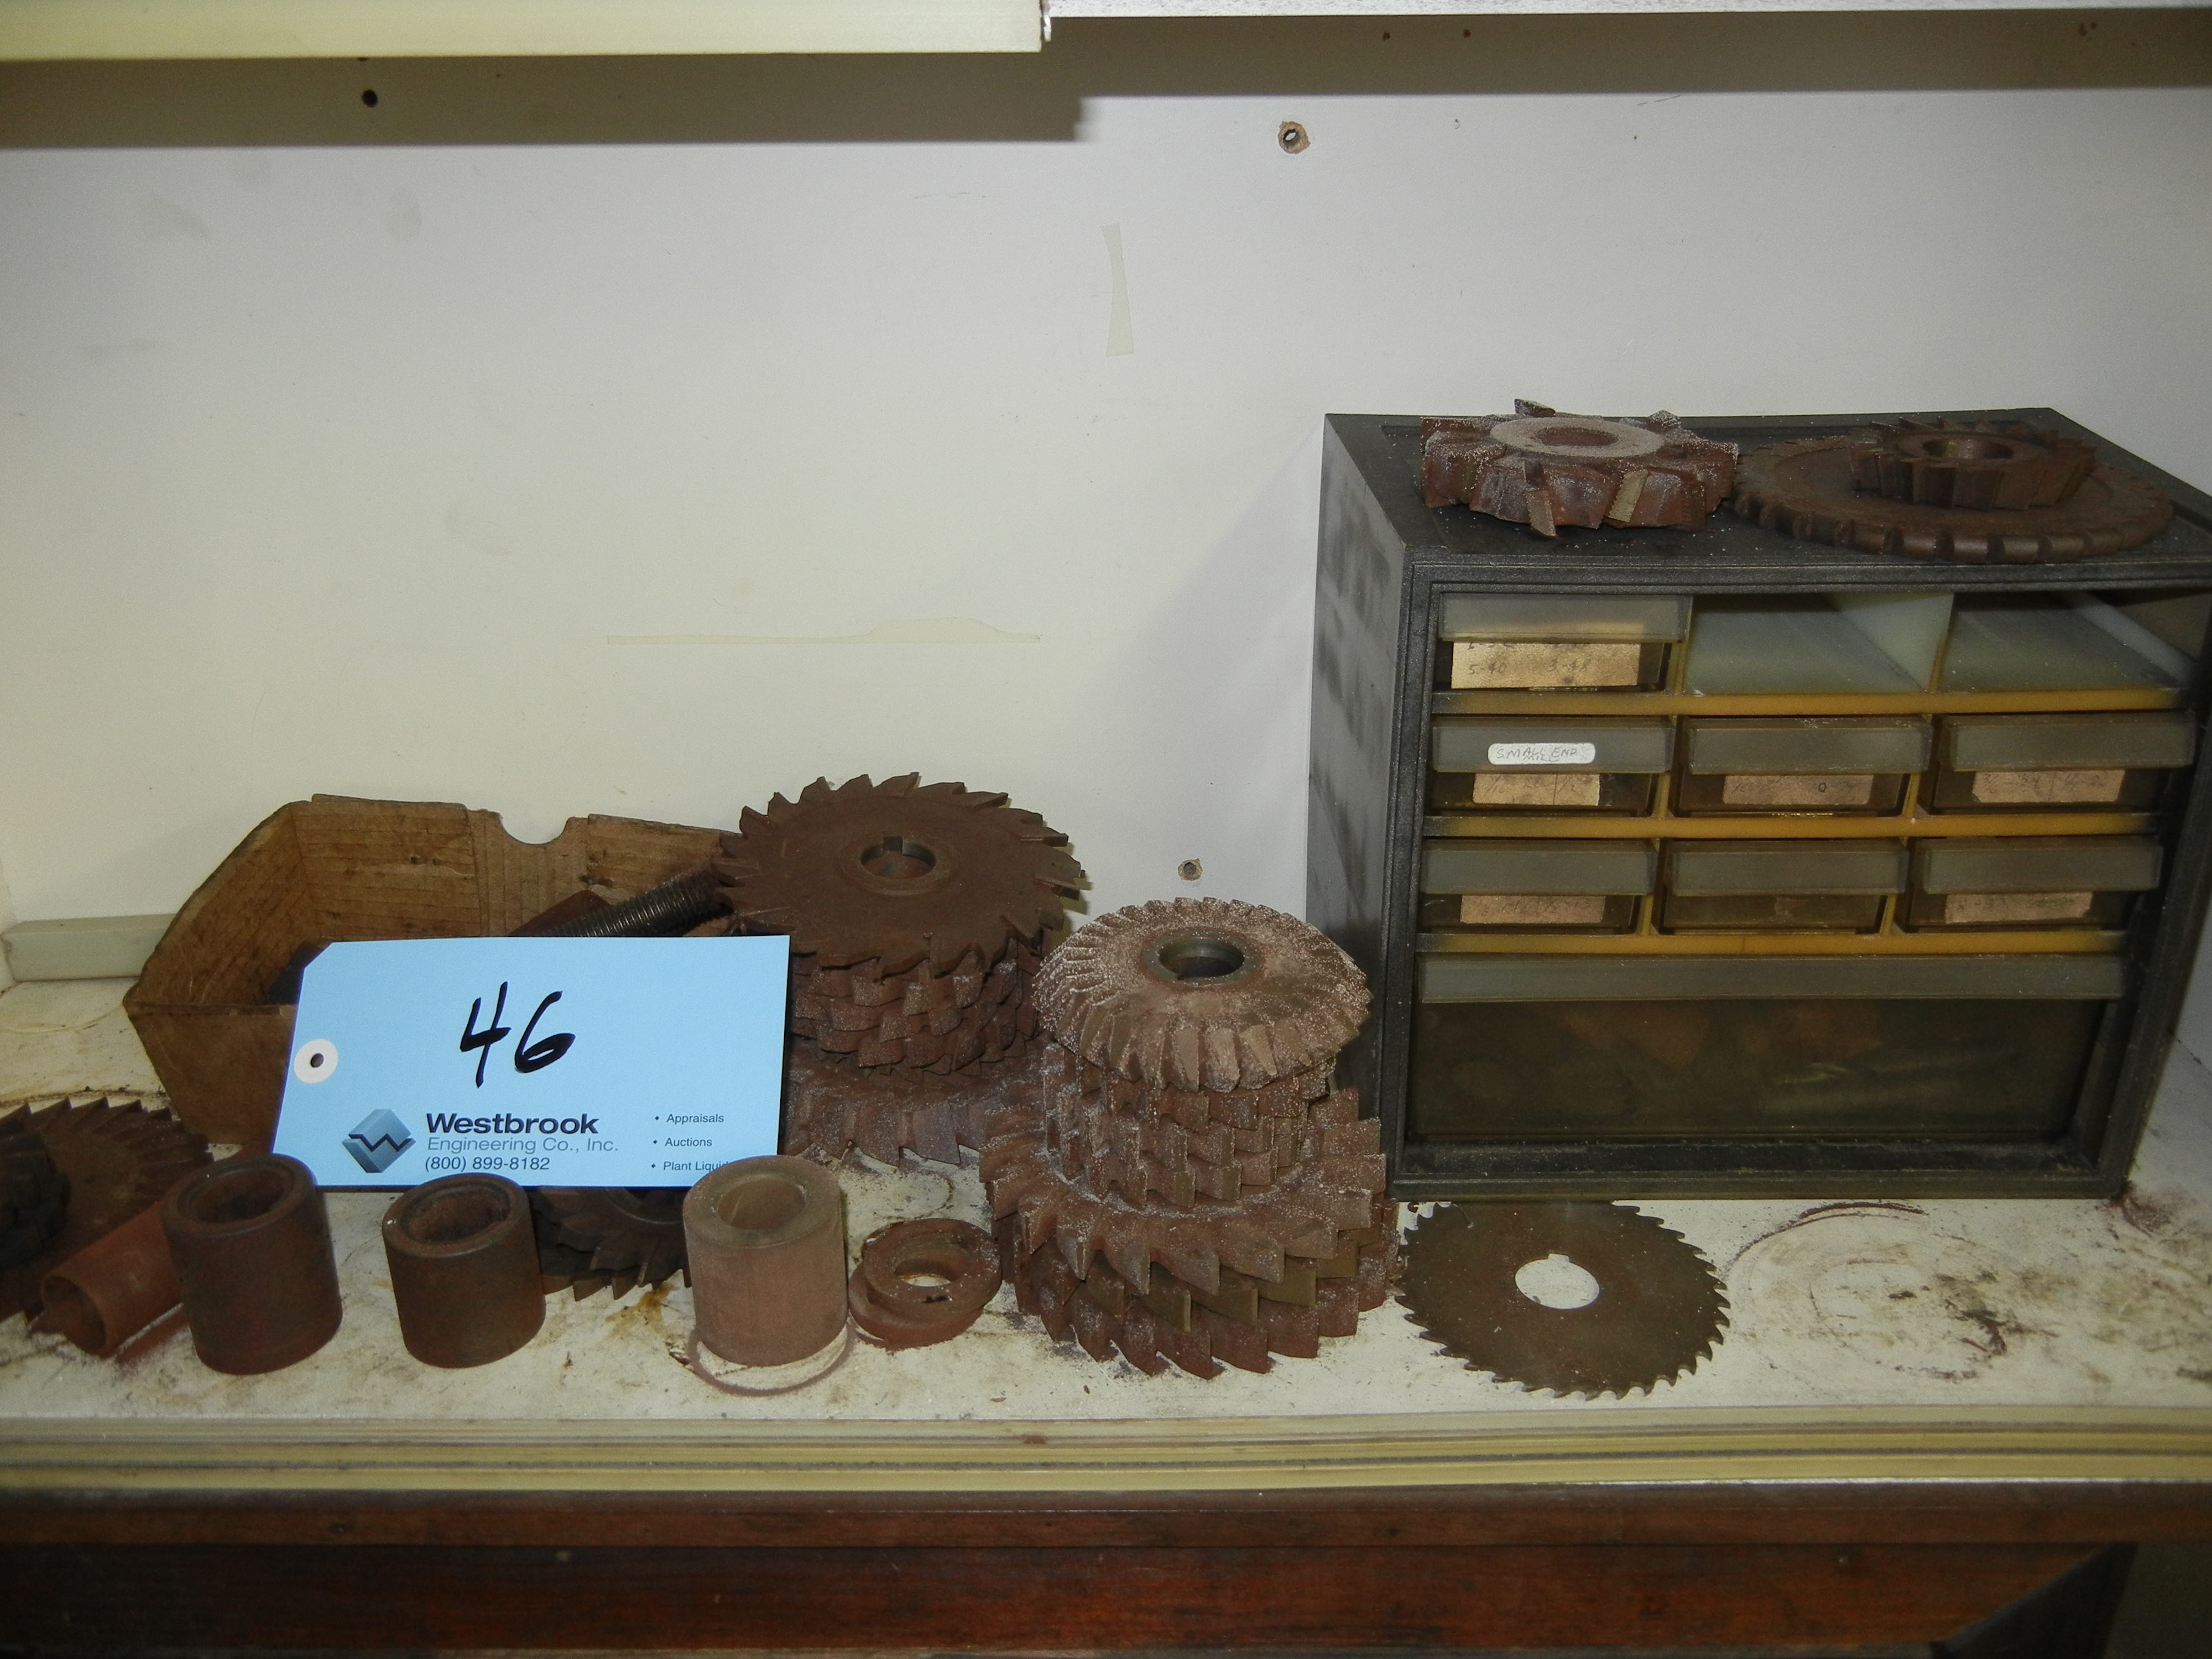 Contents of cabinet with high speed steel and cutters (CABINET NOT INCLUDED)